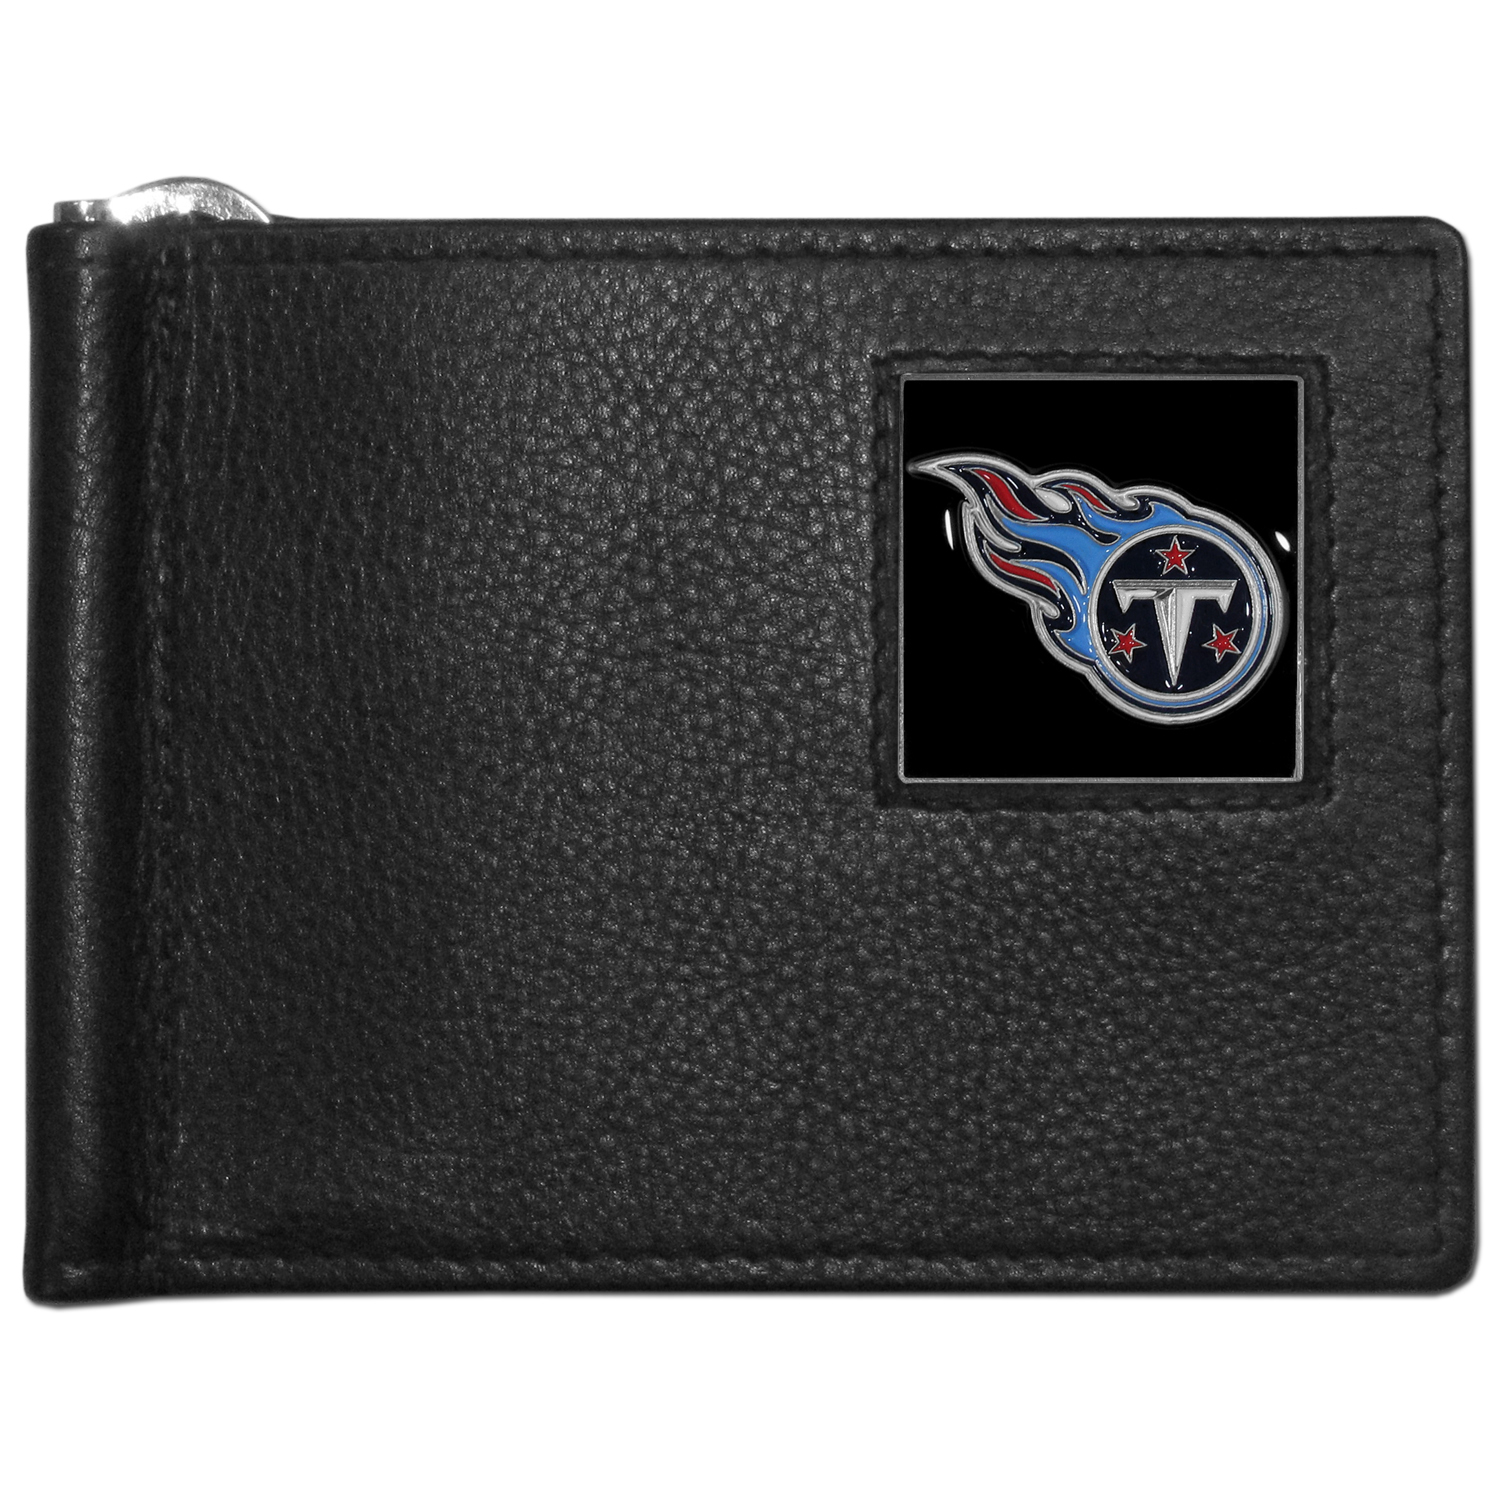 Tennessee Titans Leather Bill Clip Wallet - This cool new style wallet features an inner, metal bill clip that lips up for easy access. The super slim wallet holds tons of stuff with ample pockets, credit card slots & windowed ID slot.  The wallet is made of genuine fine grain leather and it finished with a metal Tennessee Titans emblem. The wallet is shipped in gift box packaging.